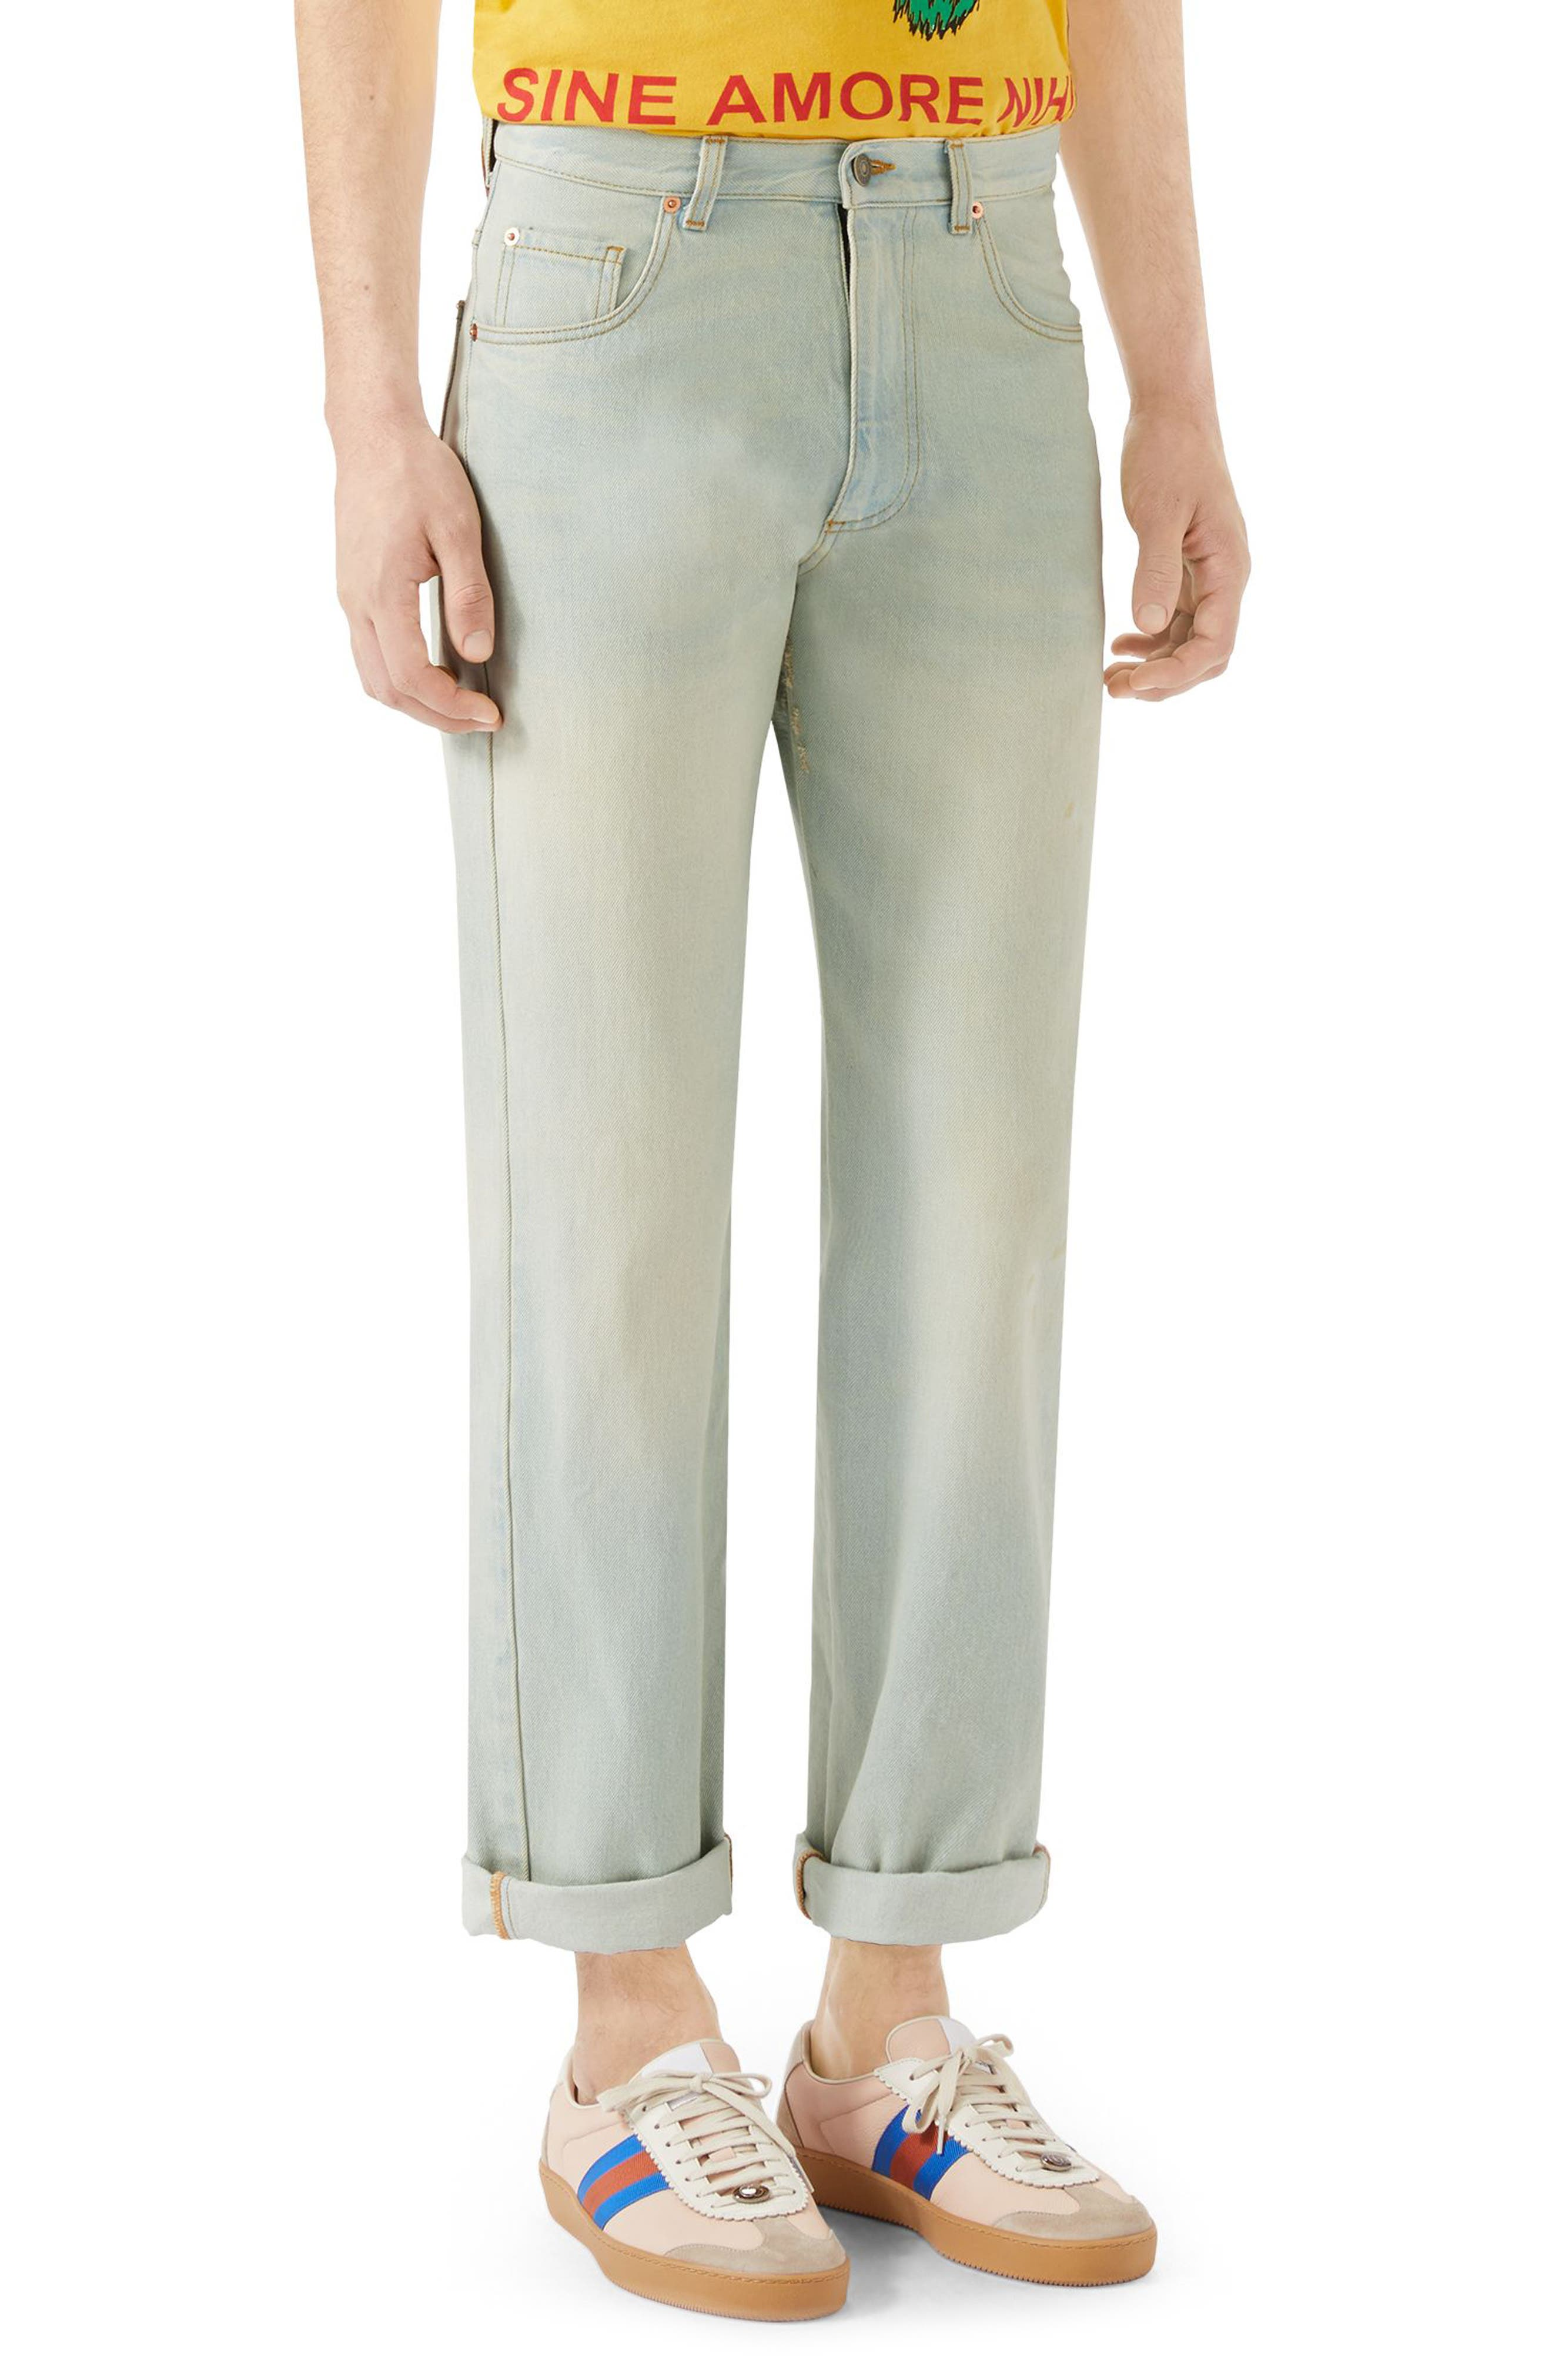 Bleach Washed Jeans,                             Main thumbnail 1, color,                             LIGHT BLUE